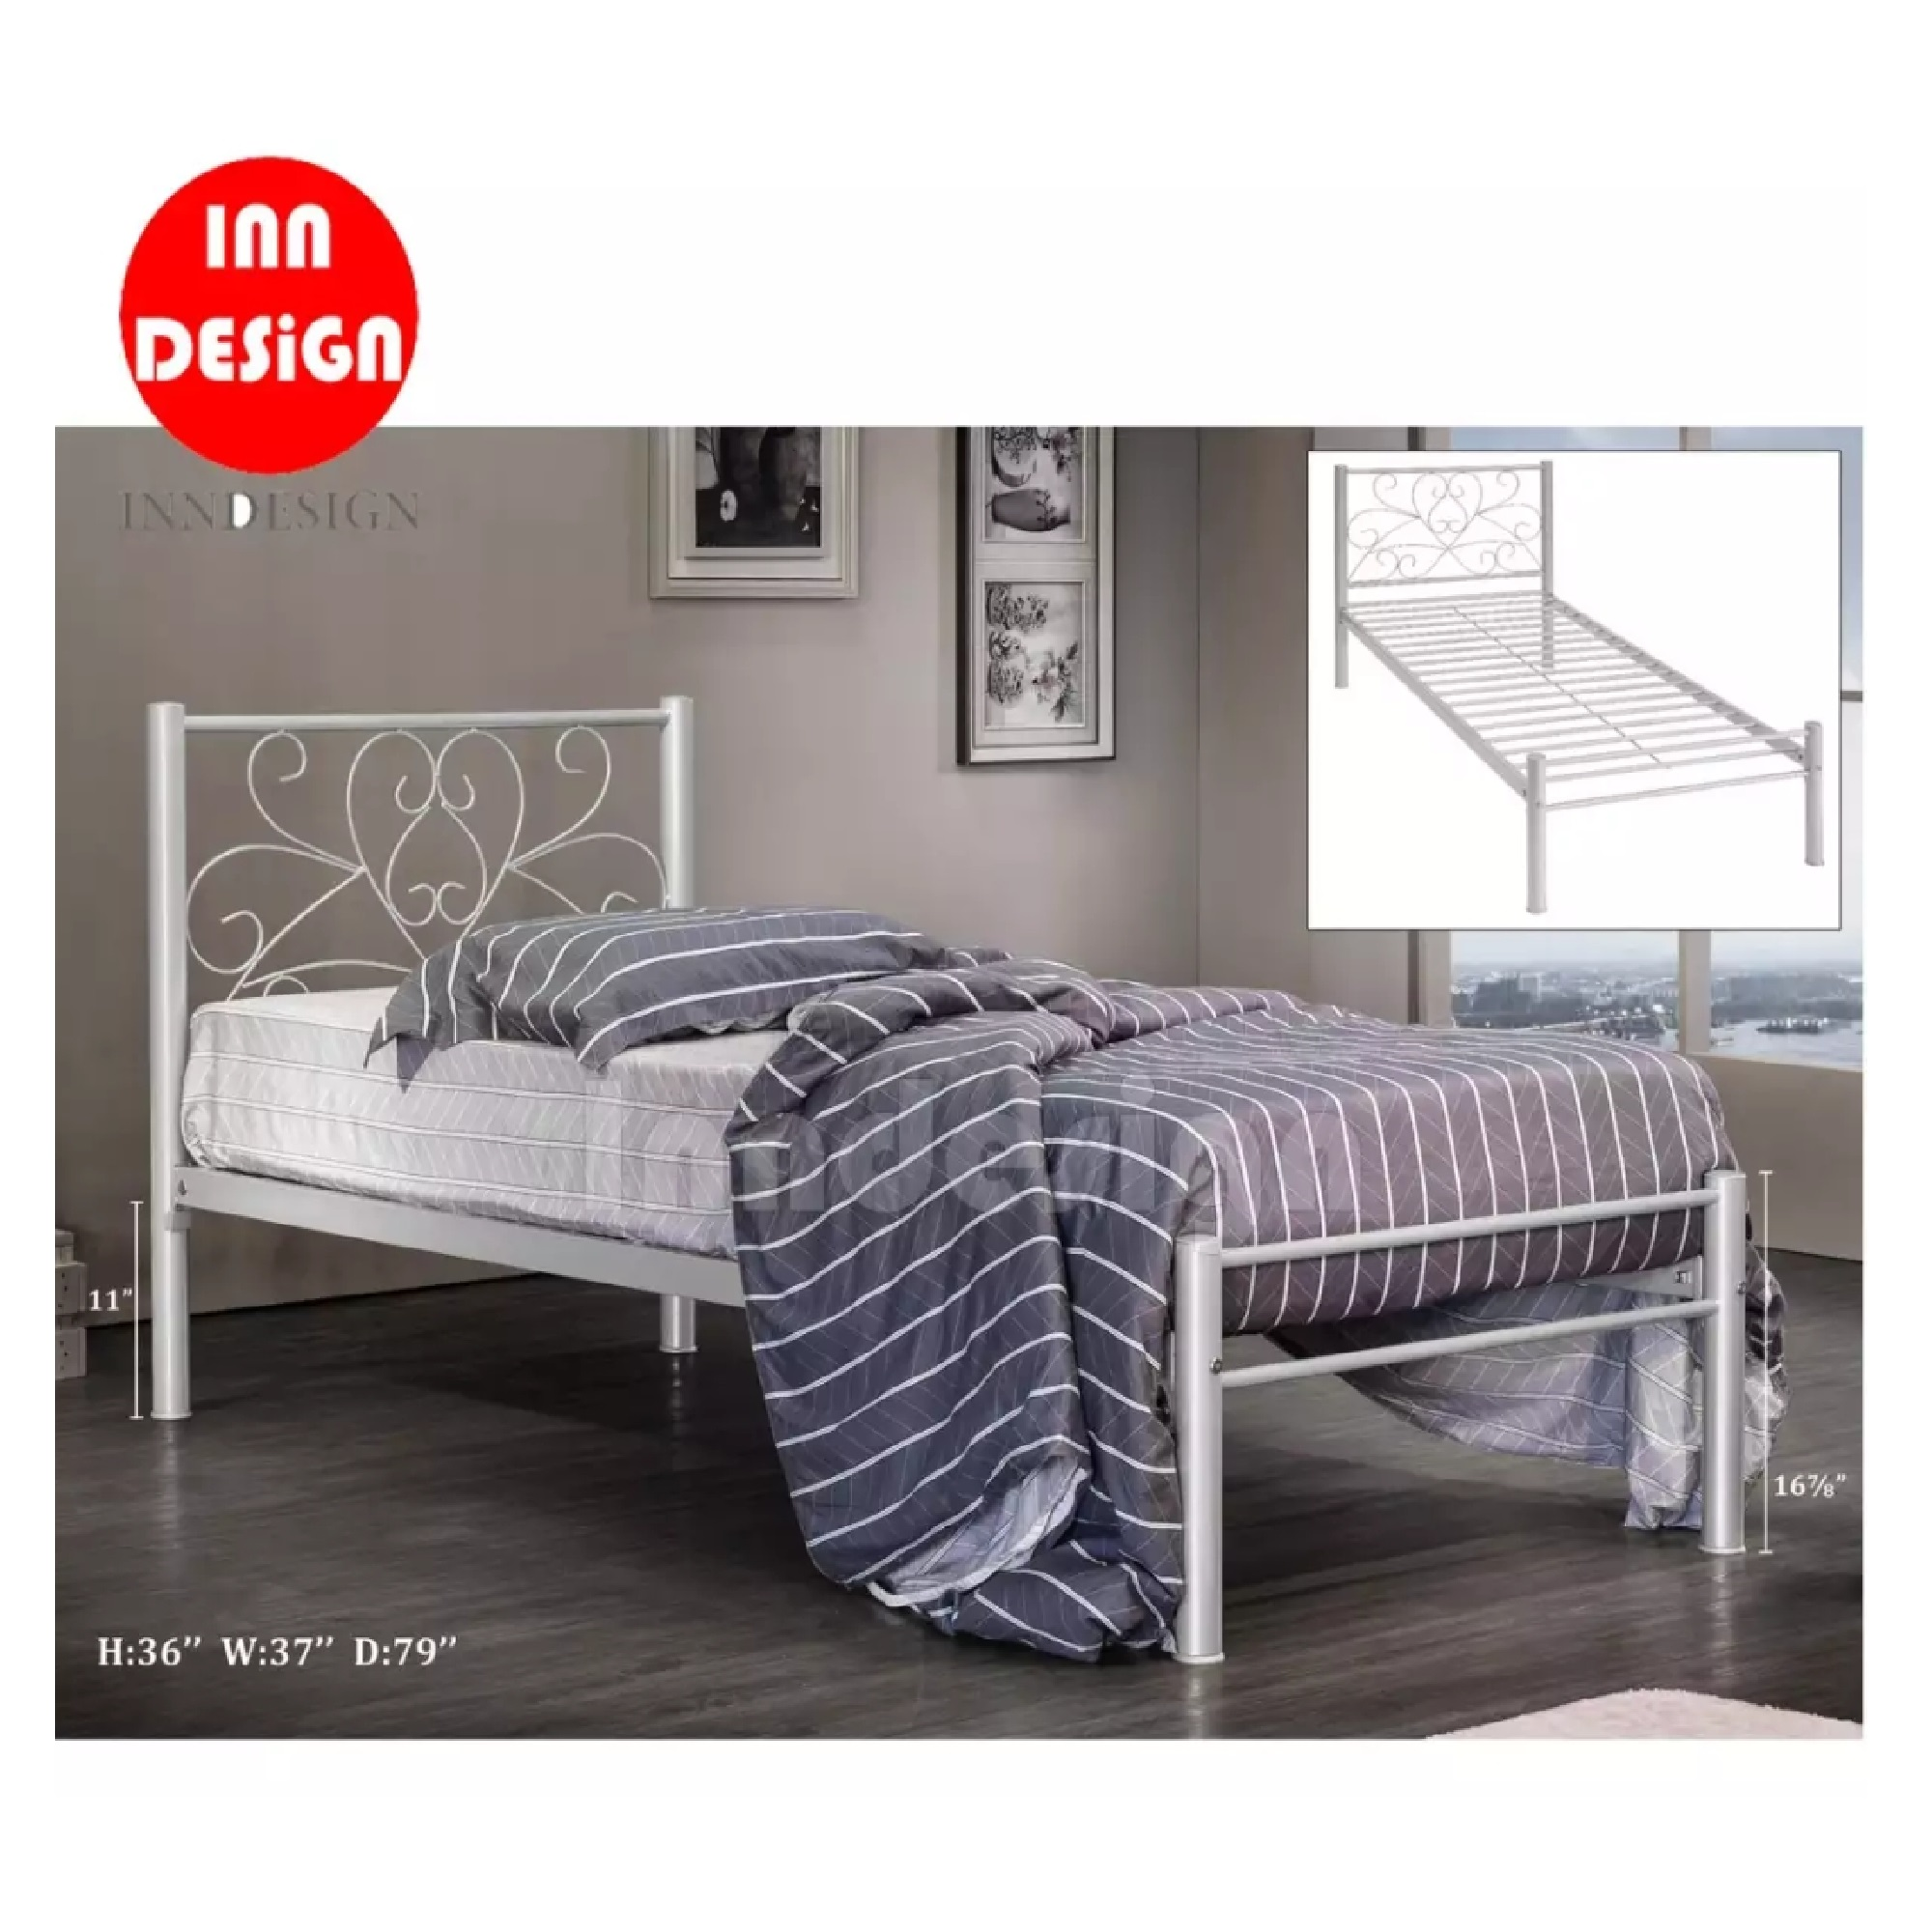 Single Metal Bed / Metal Bed Frame (Silver)